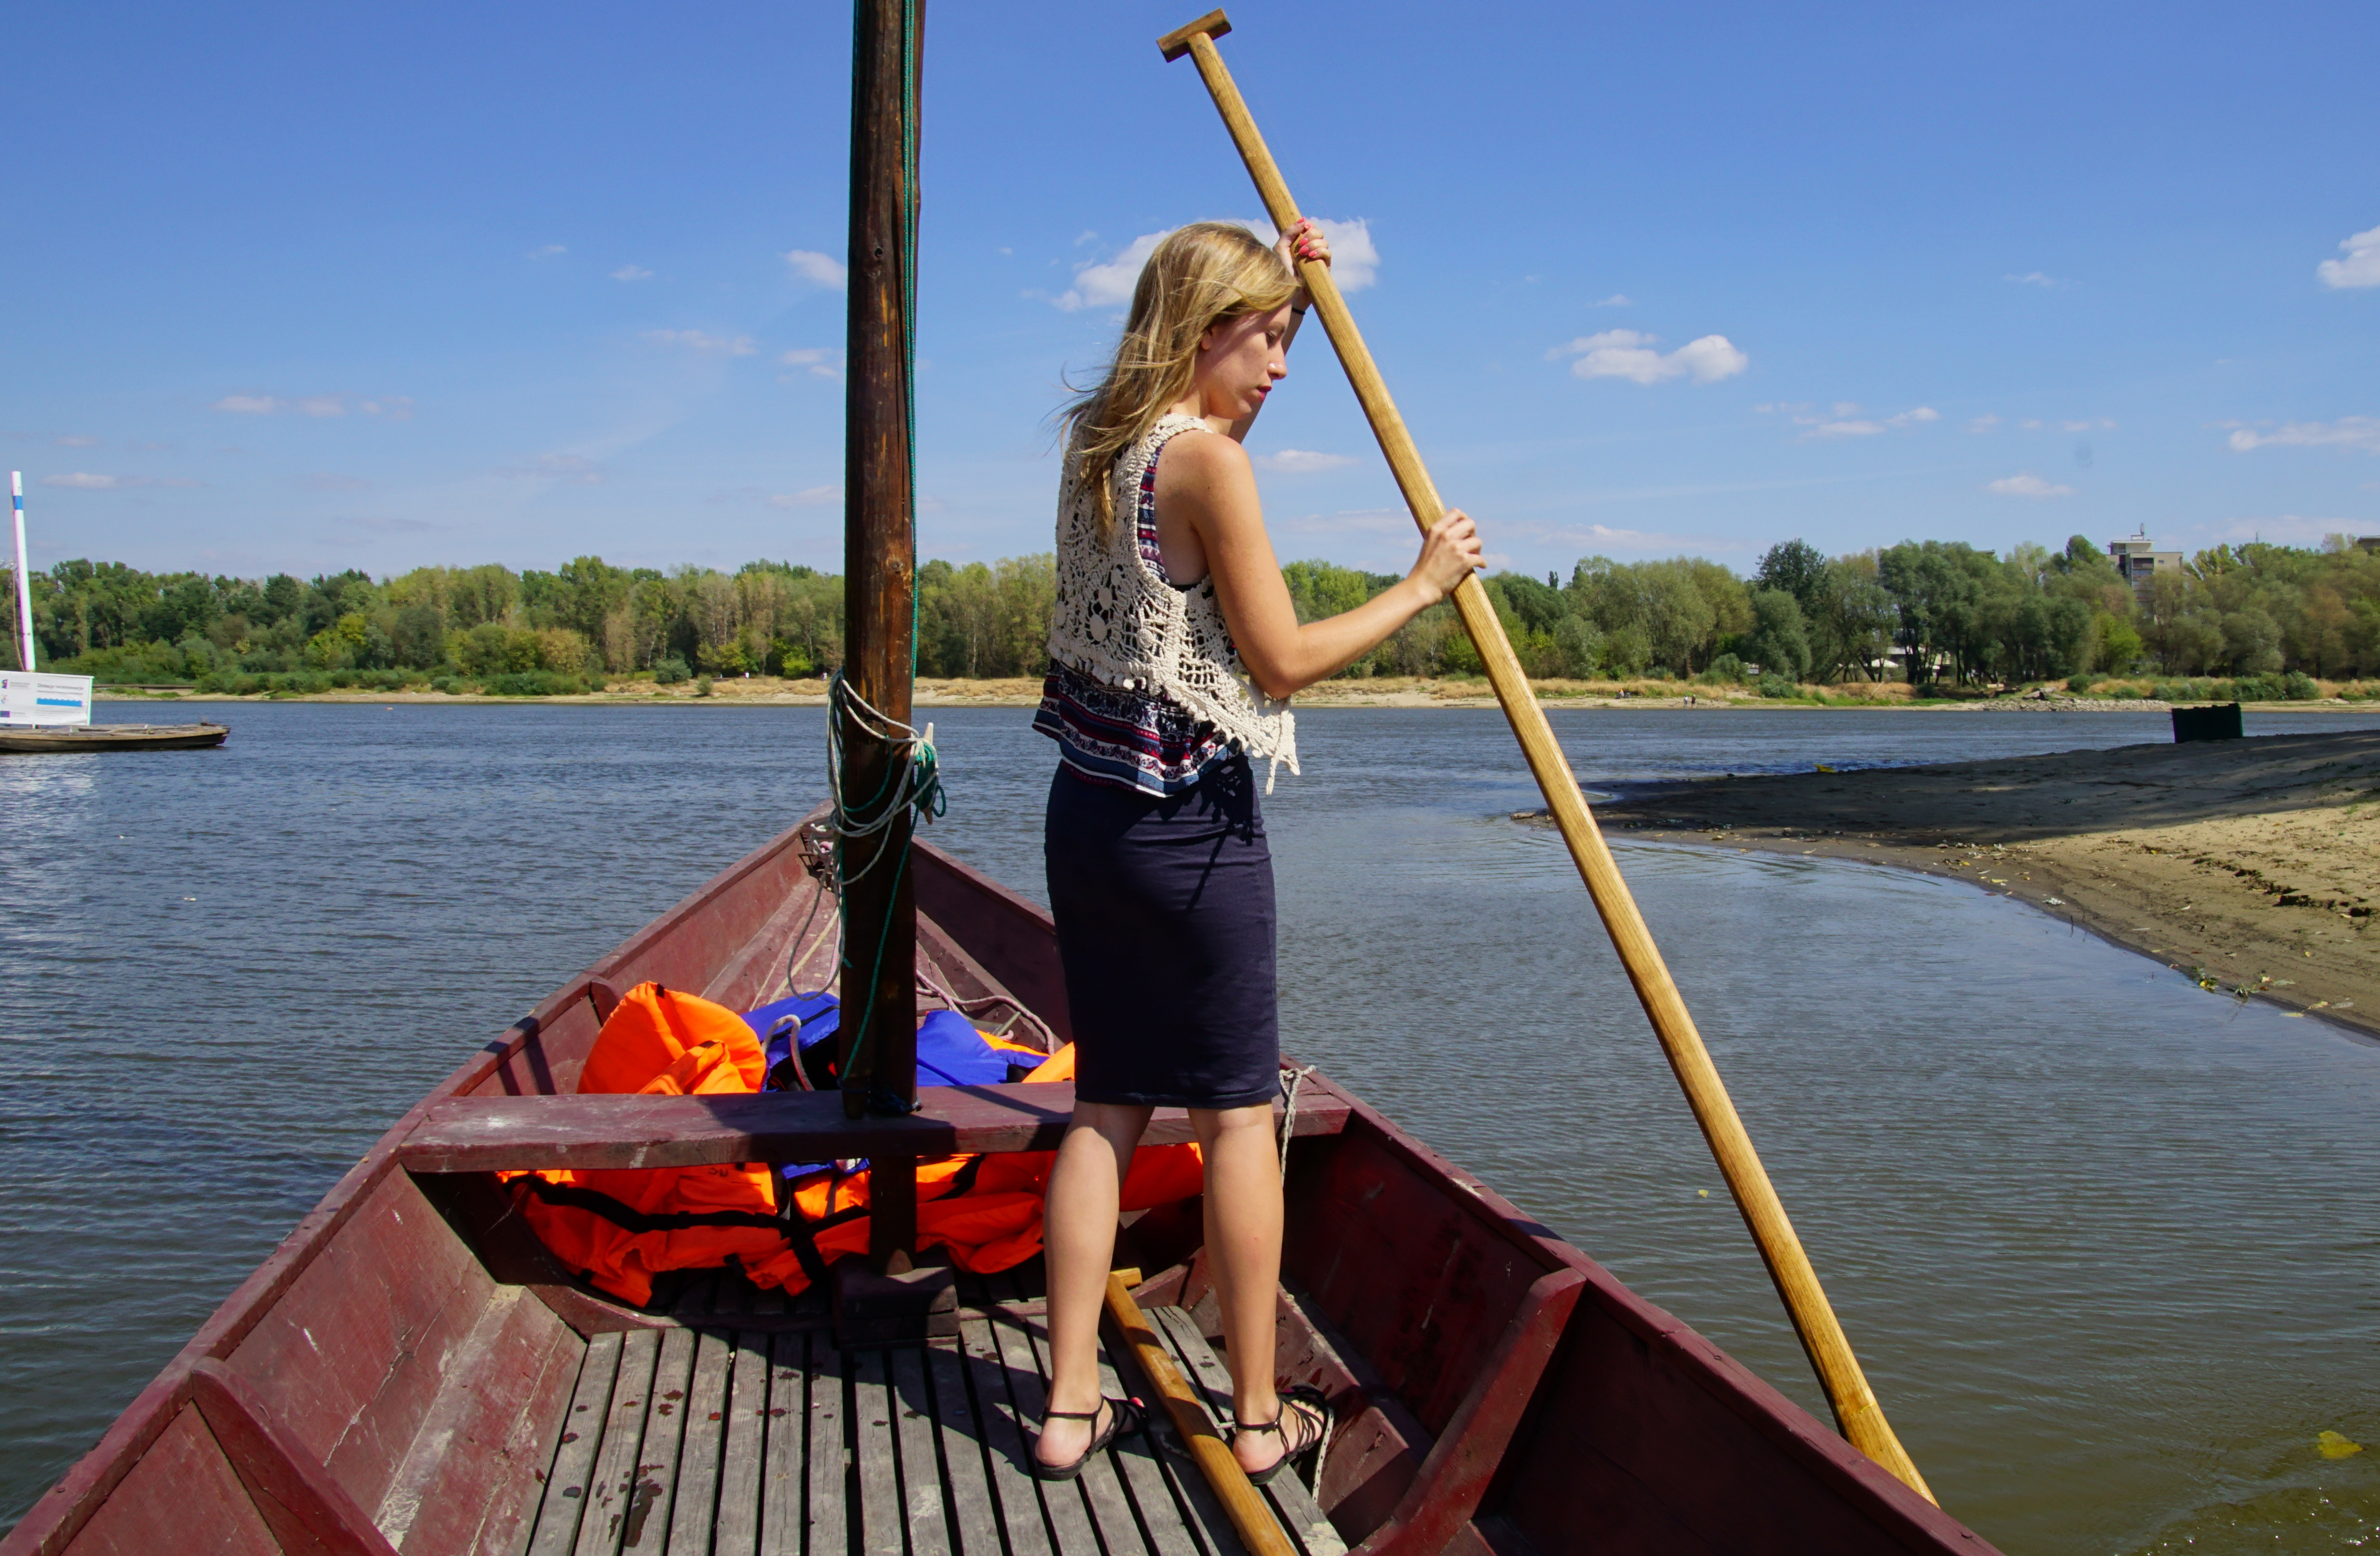 That Backacker Audrey Bergner paddling on a boat in Warsaw, Poland